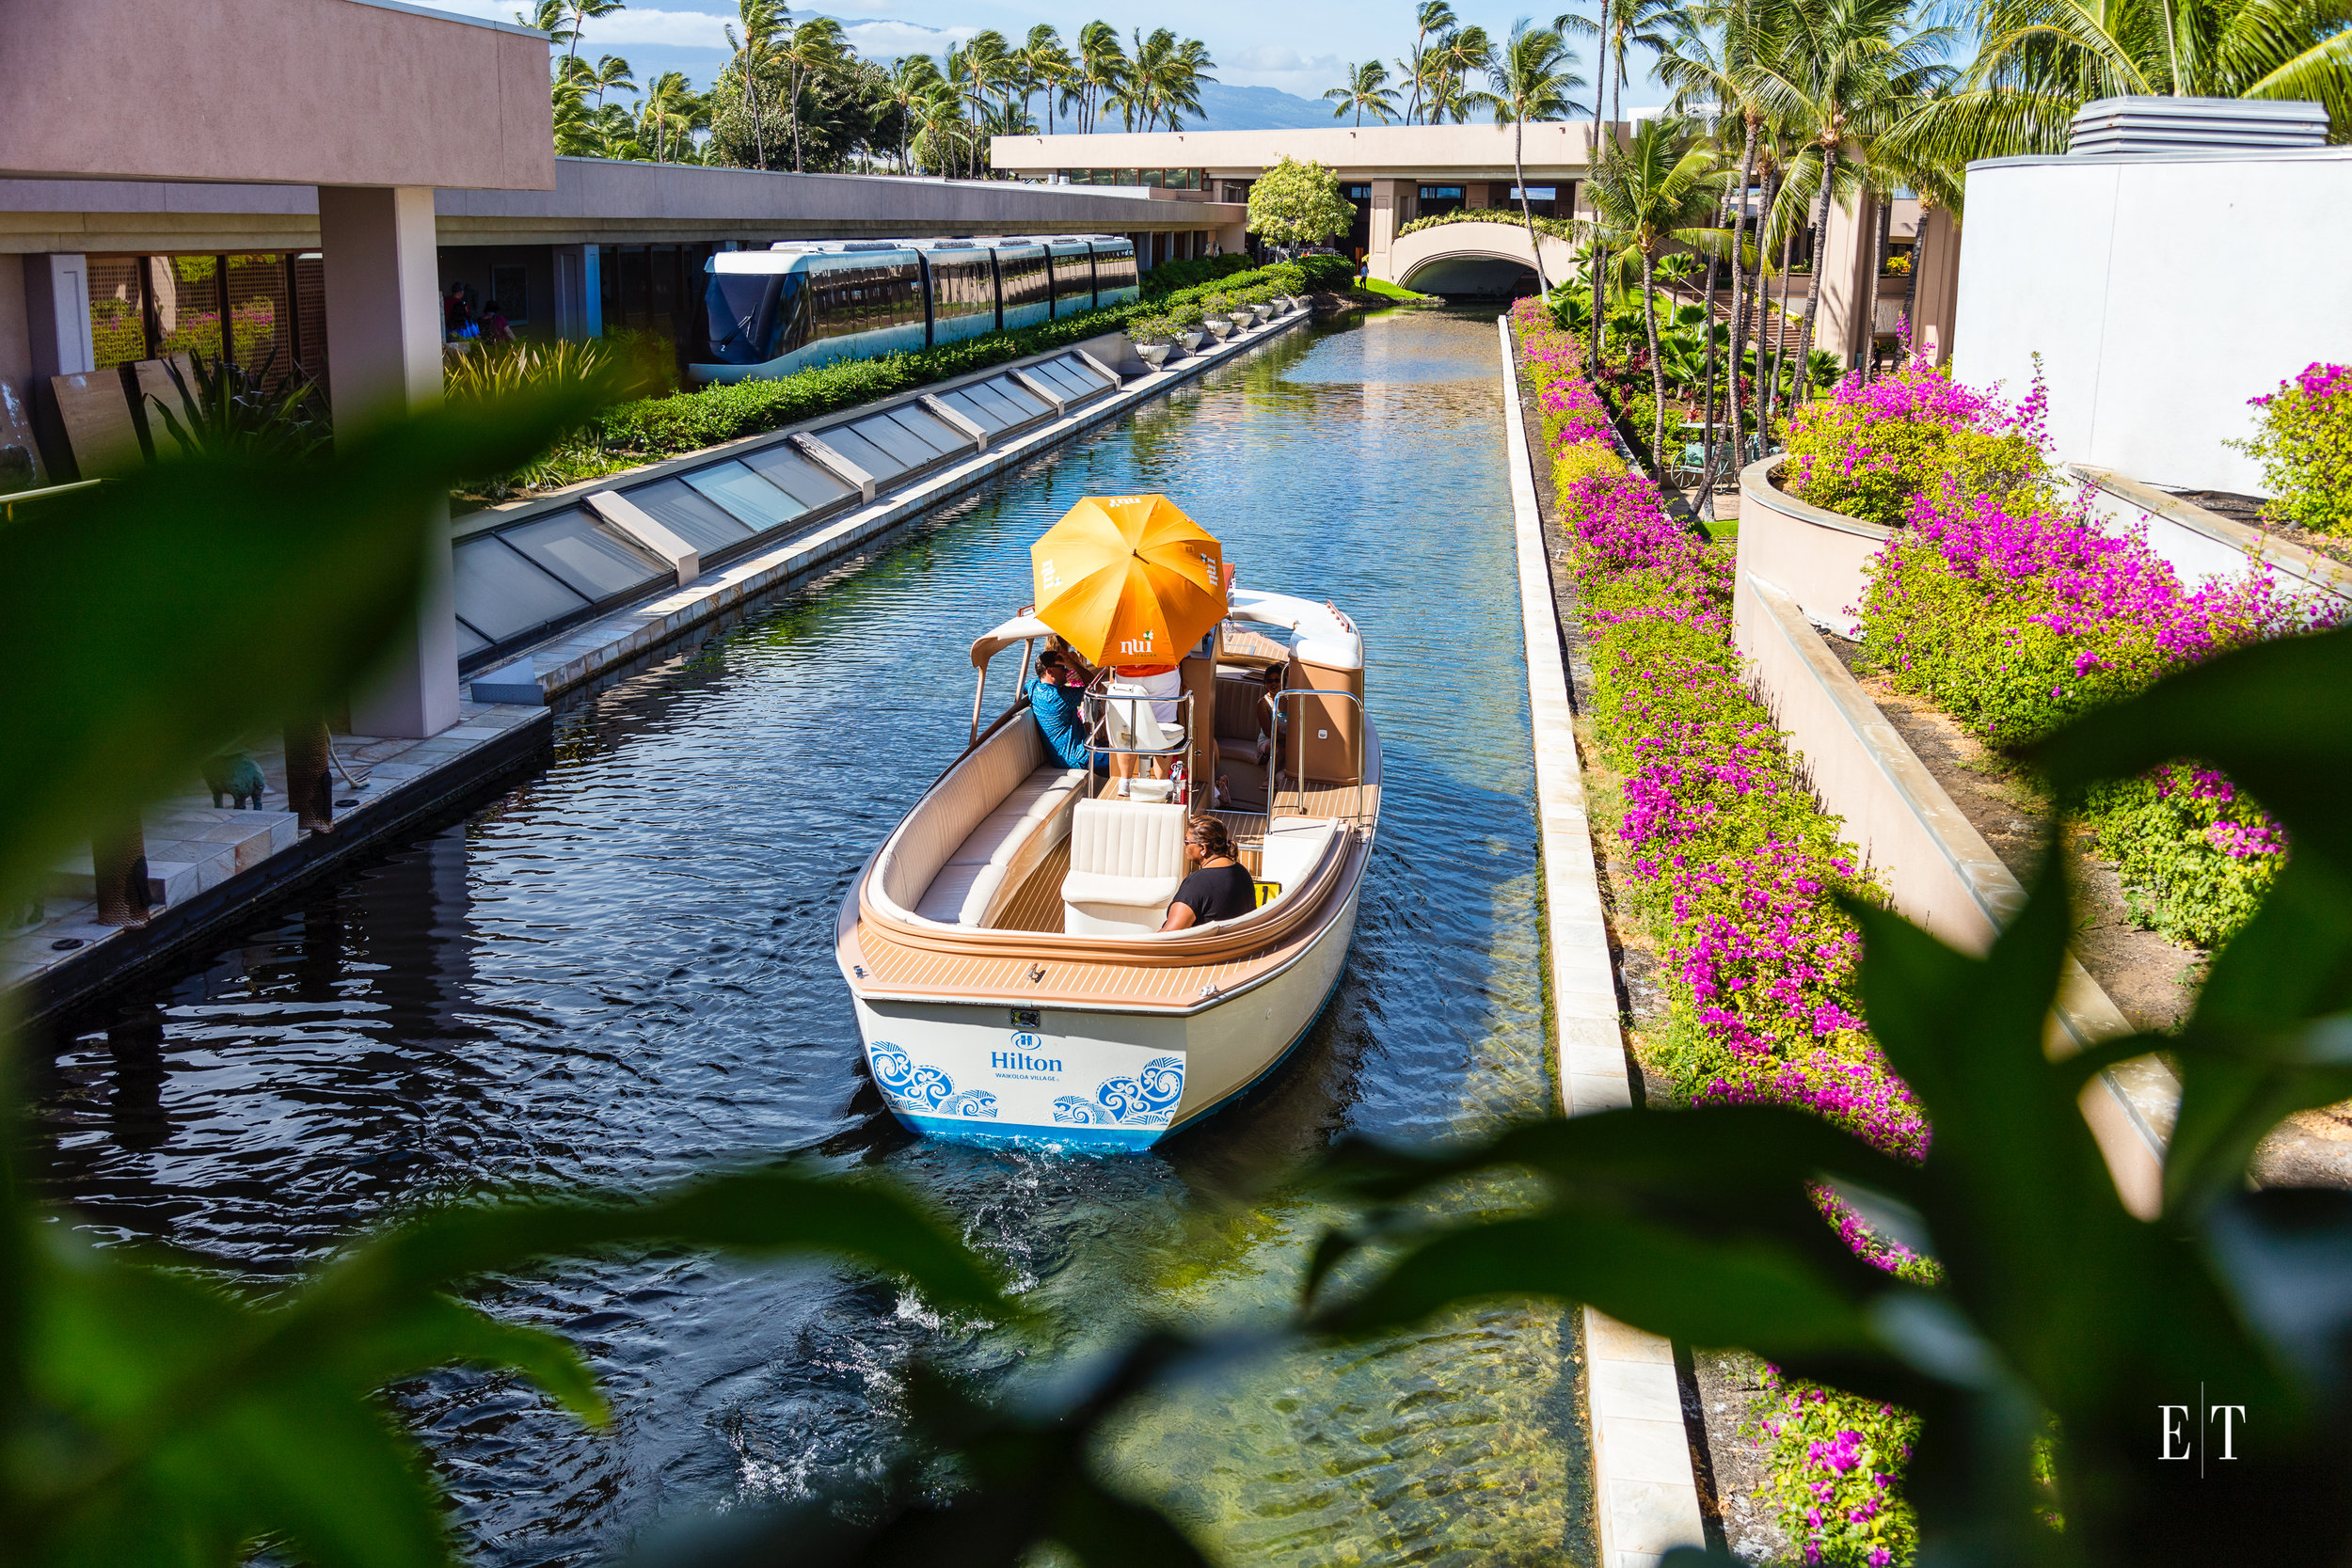 Hilton Waikoloa Village electric boat